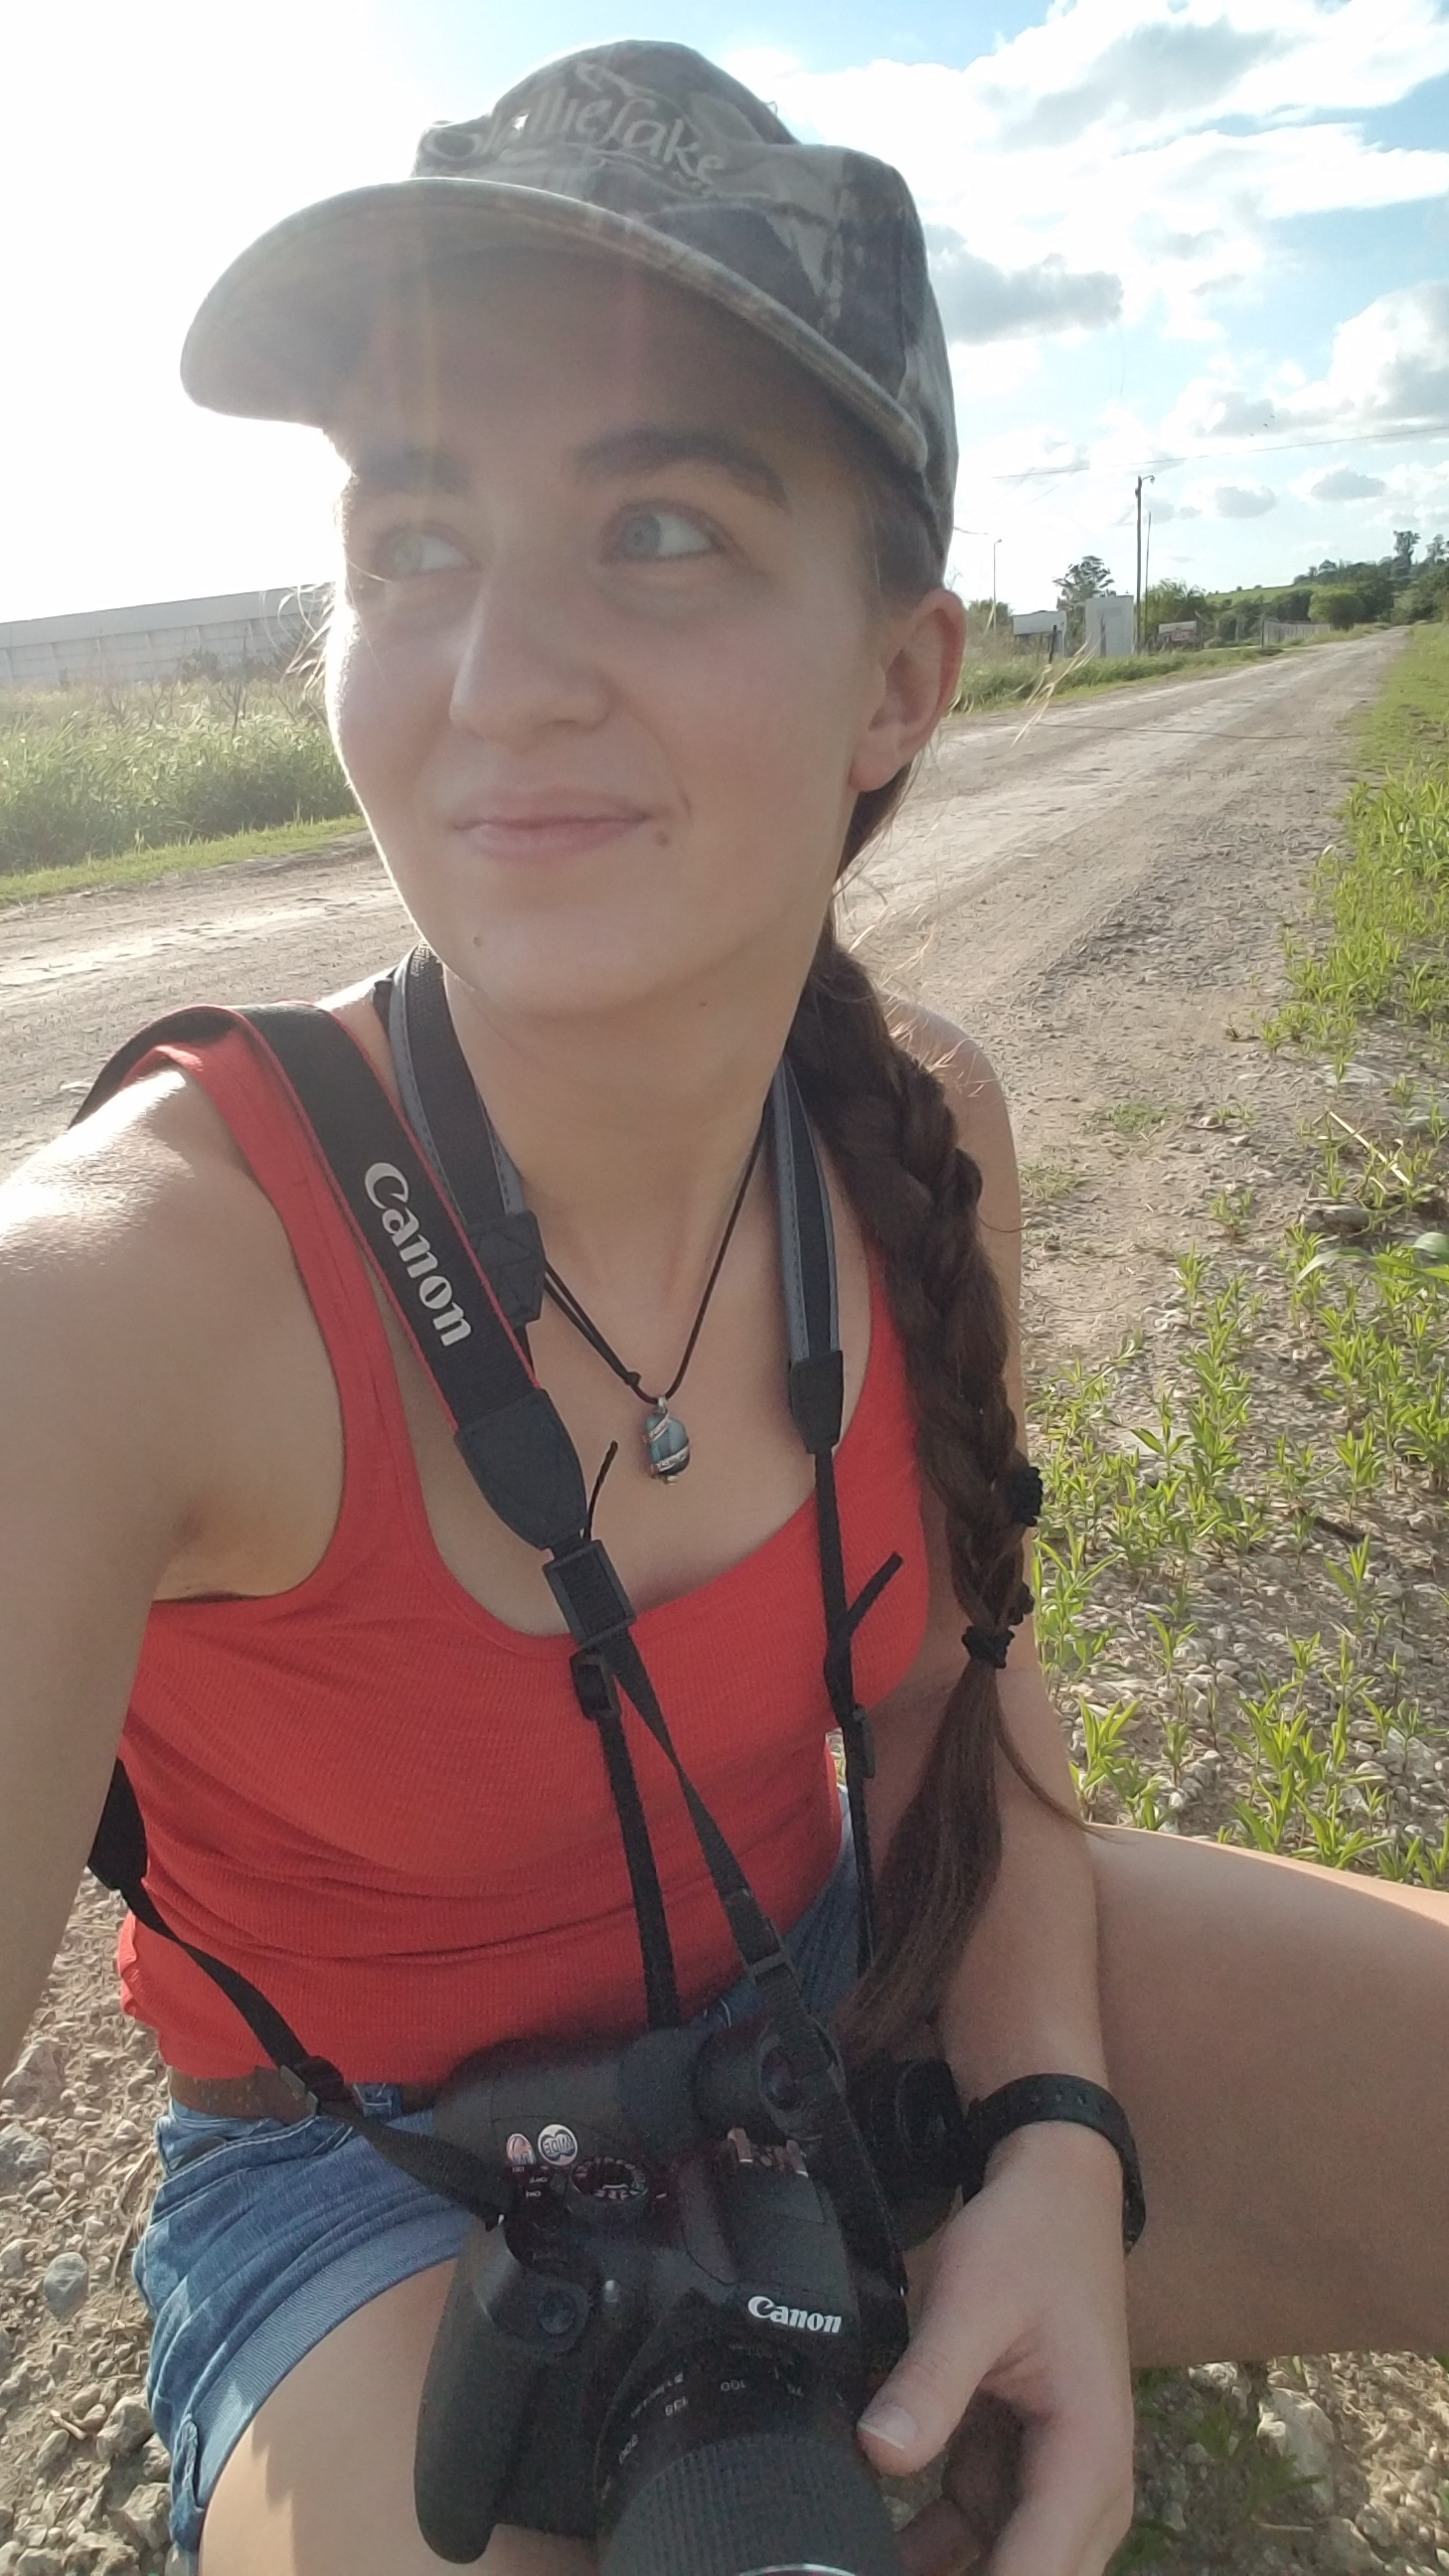 Savannah Sexton - is a Biology undergrad at Walla Walla University who enjoys birding, music, working with horses, and introvert activities in her spare time. She is currently looking for an entomologist mentor (as well as any other